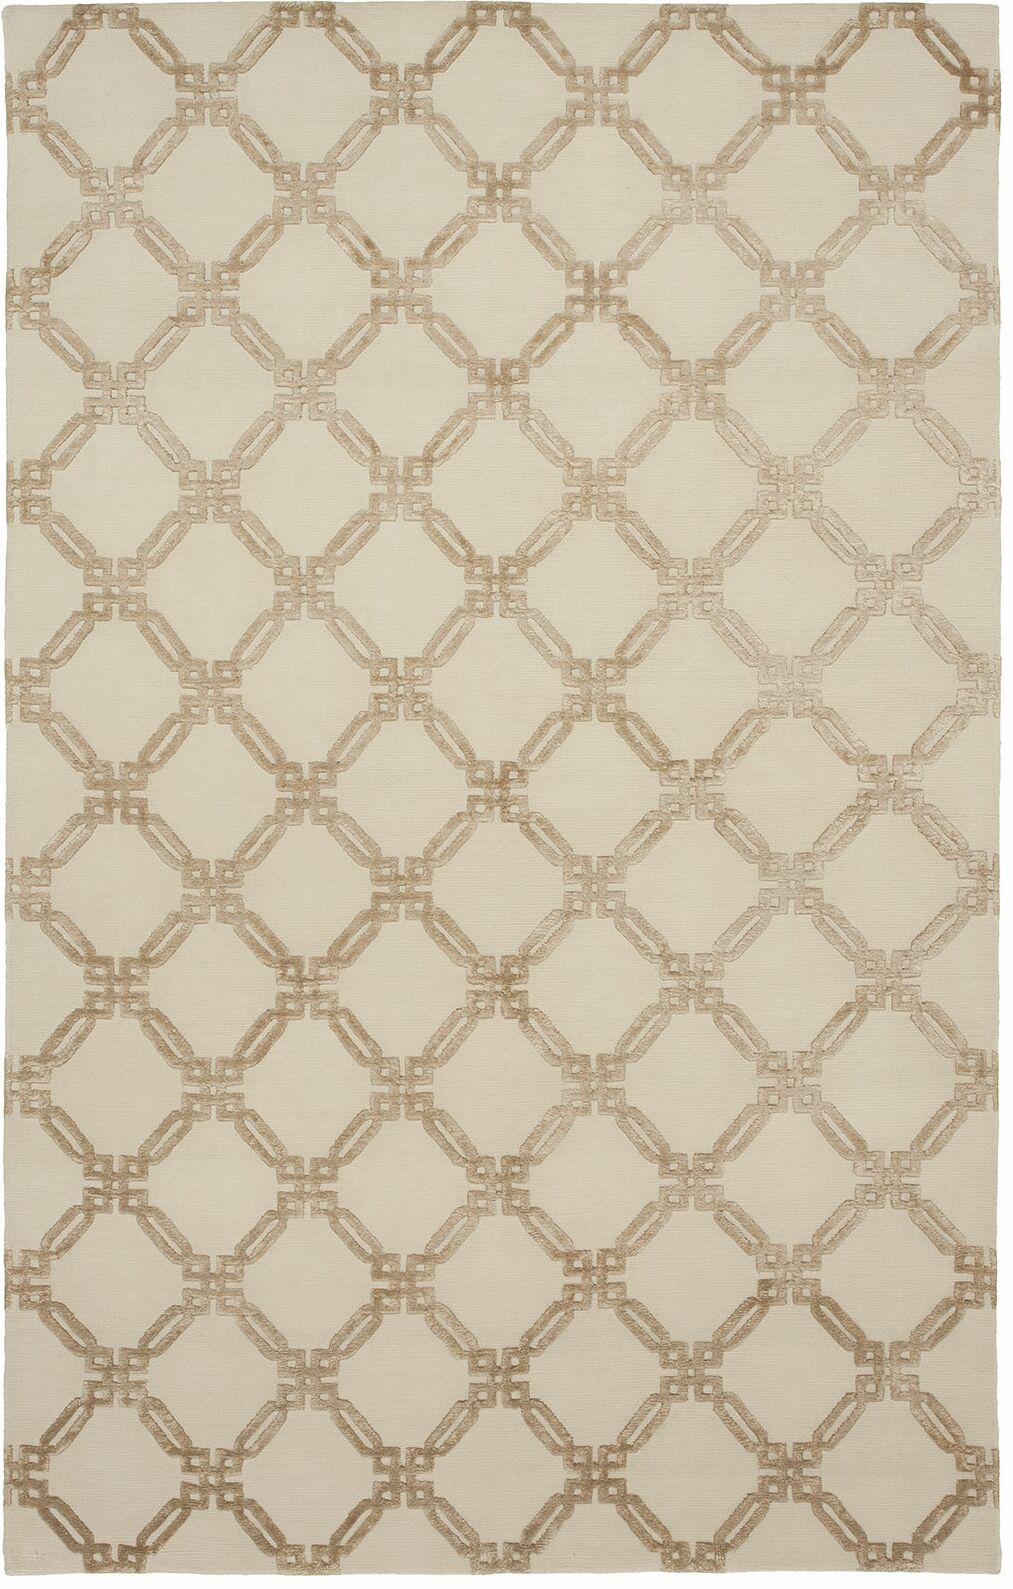 Broadway Hand-Knotted Beige Area Rug Rug Size: 8' x 10'